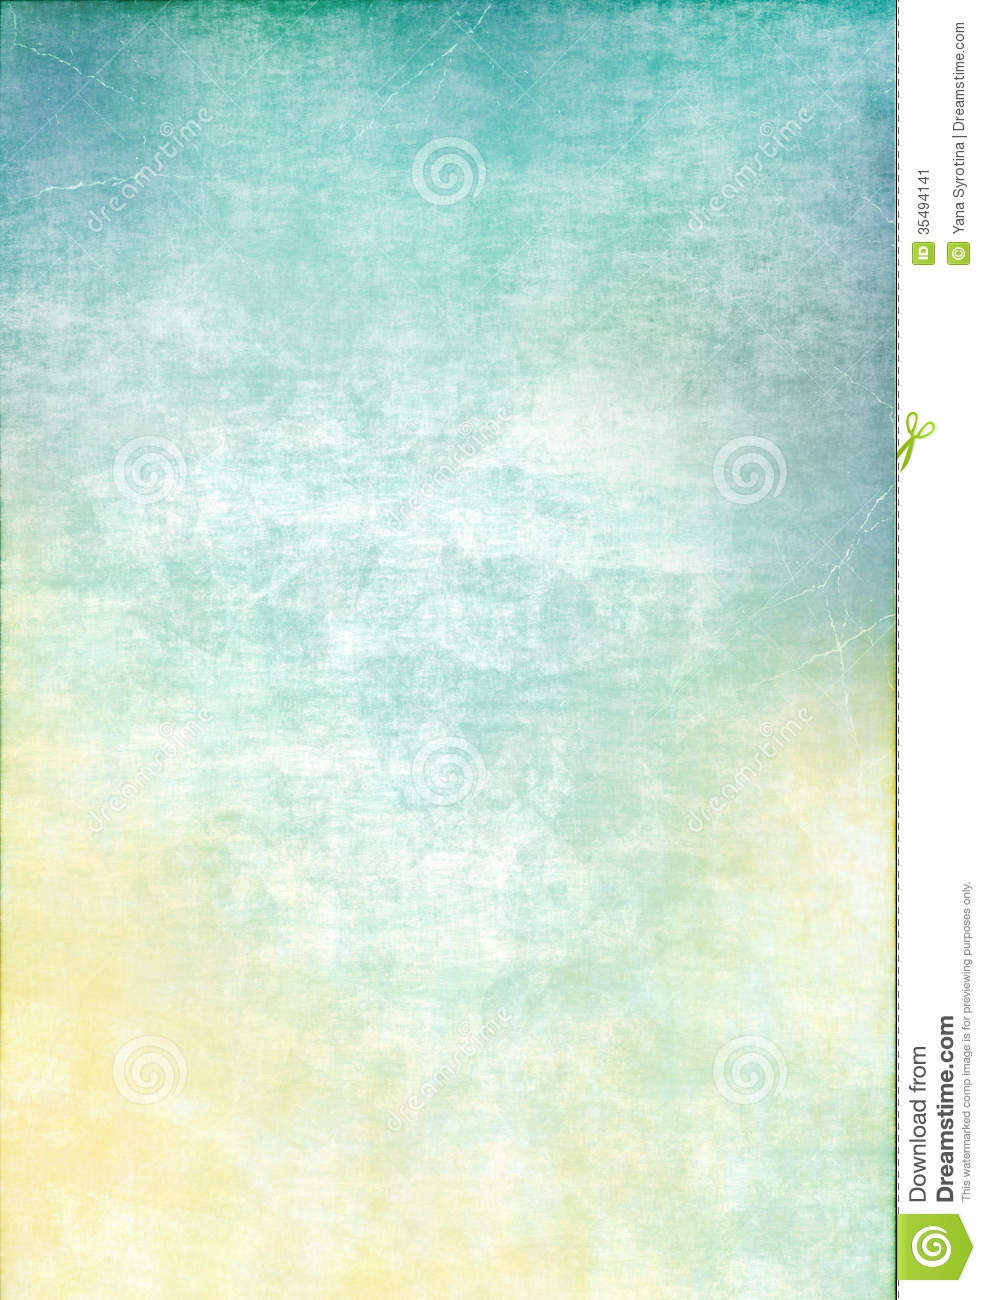 Grunge background texture stock illustration. Image of ...